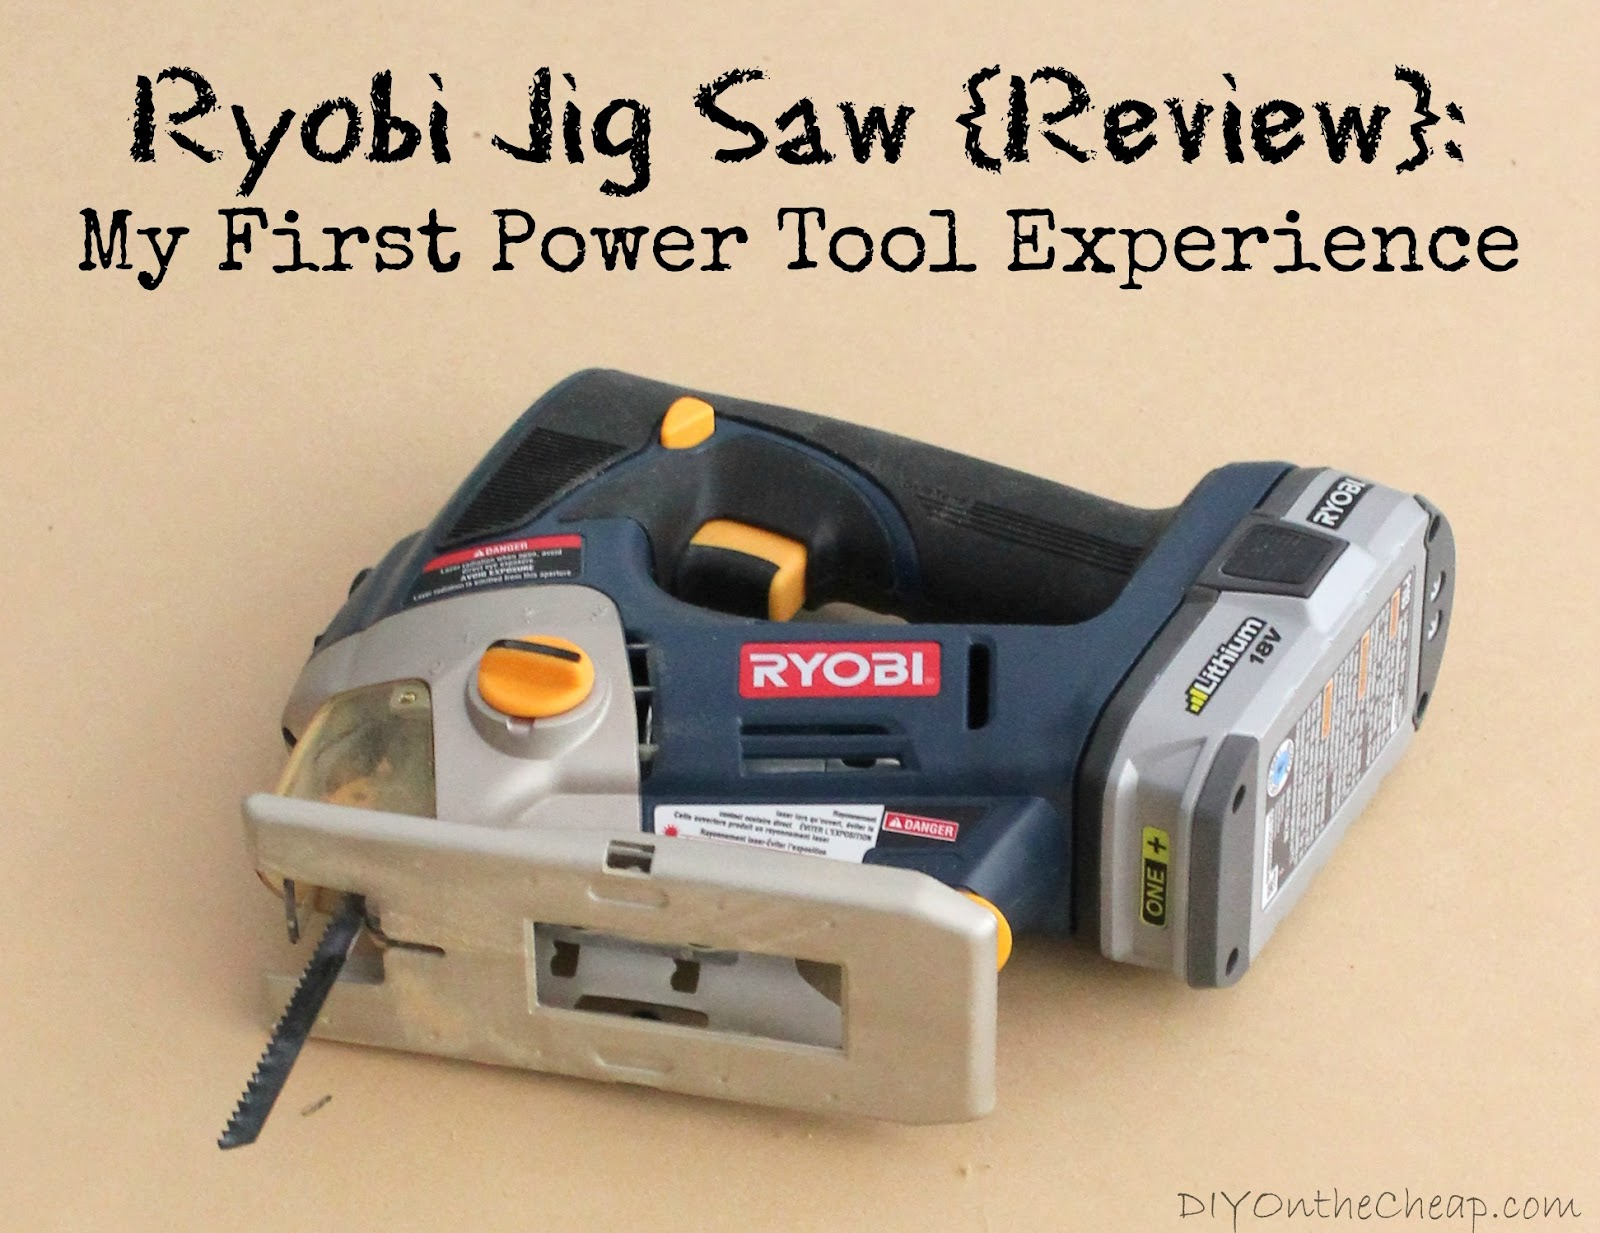 My first power tool experience ryobi jig saw review erin spain ryobi jig saw review keyboard keysfo Choice Image